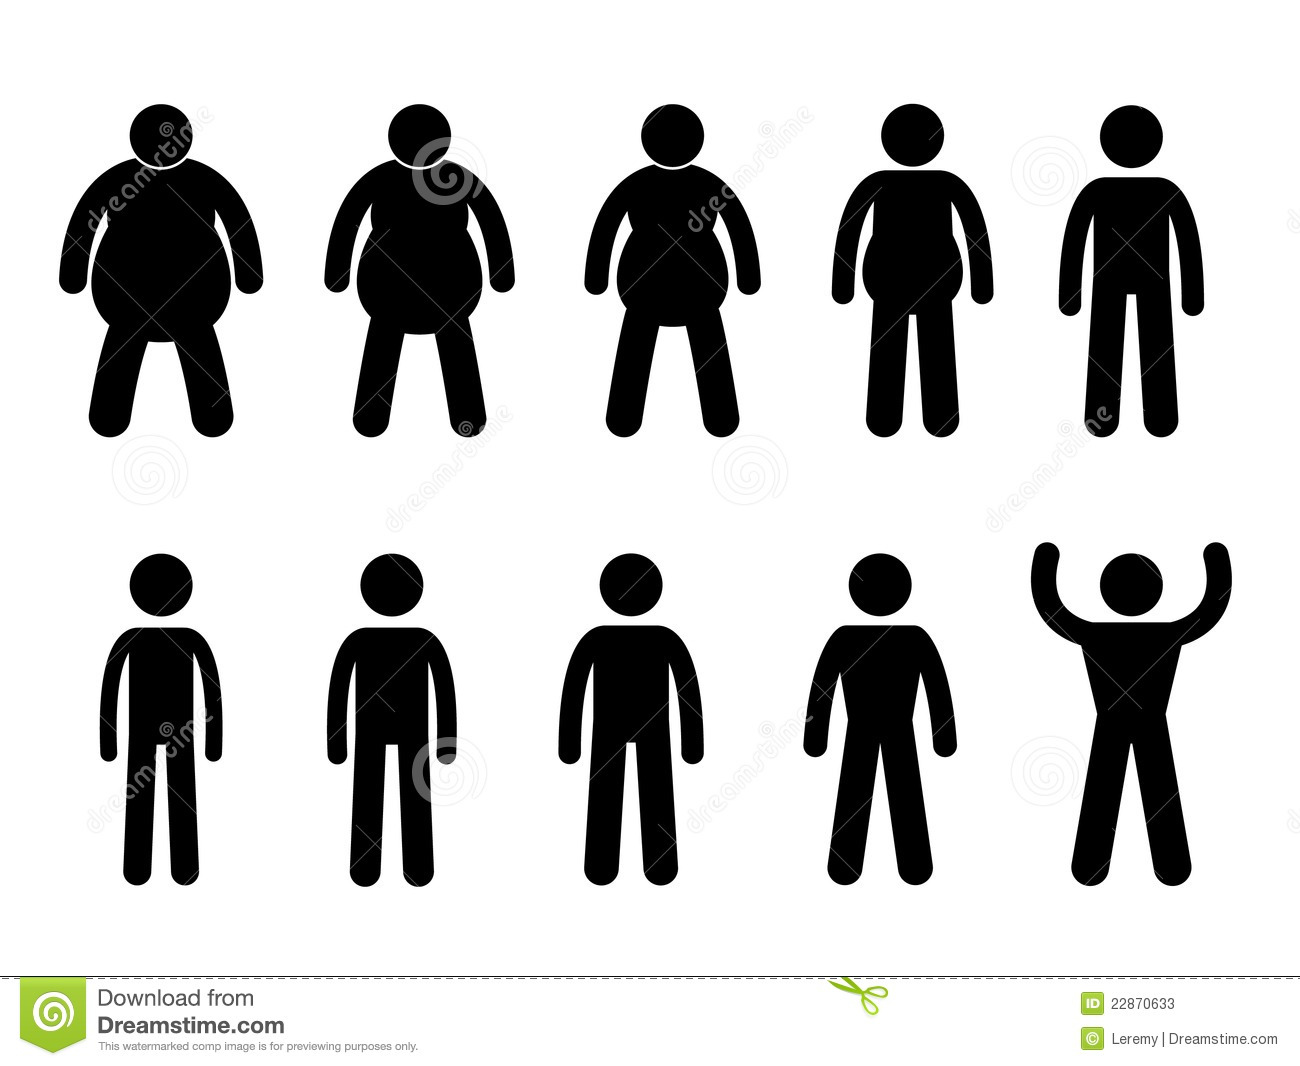 ... representing the process from fat to thin and slim to muscular